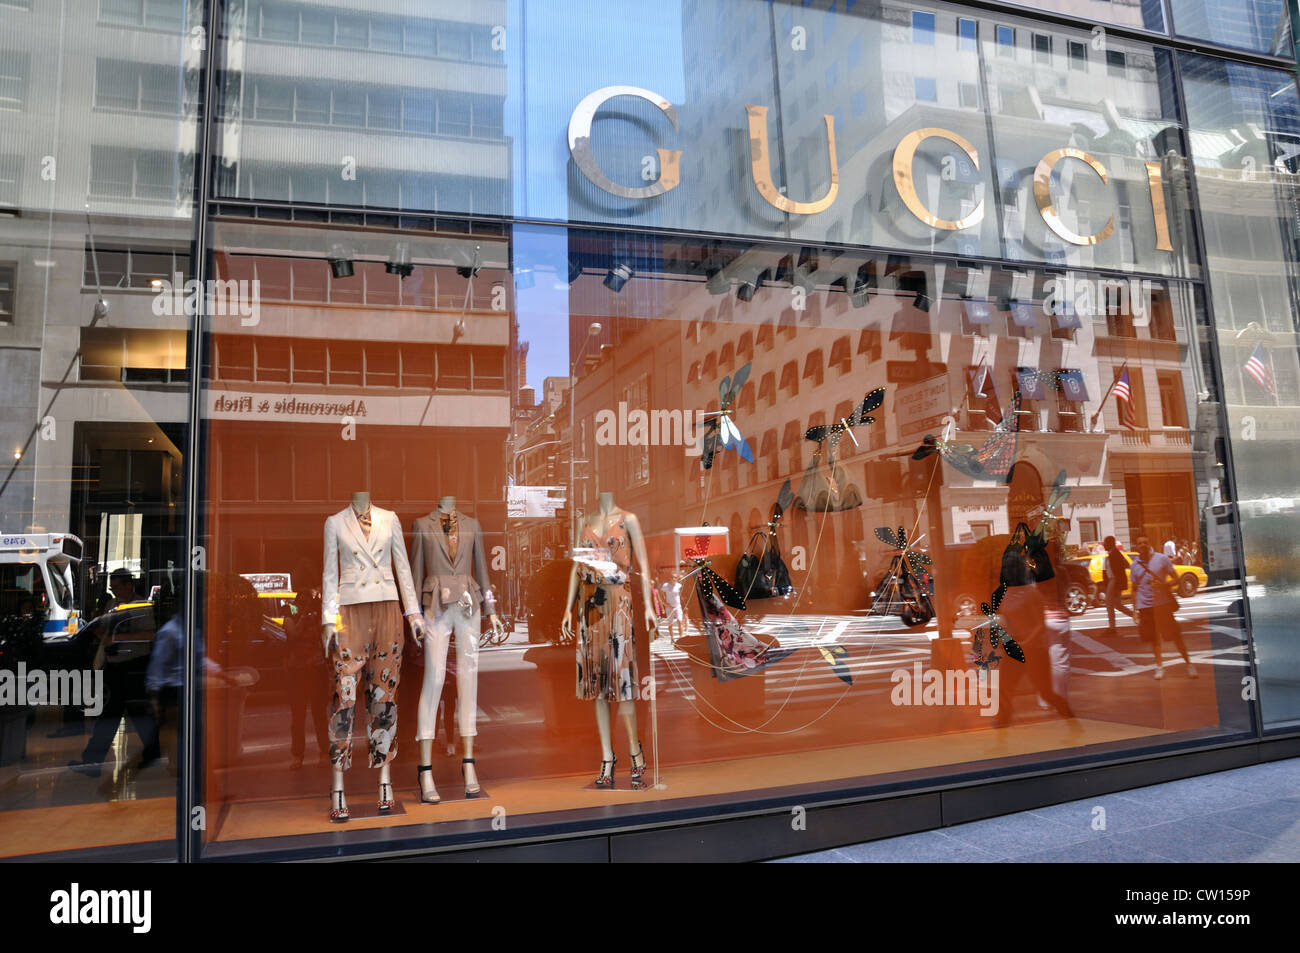 new gucci store stock photos new gucci store stock. Black Bedroom Furniture Sets. Home Design Ideas